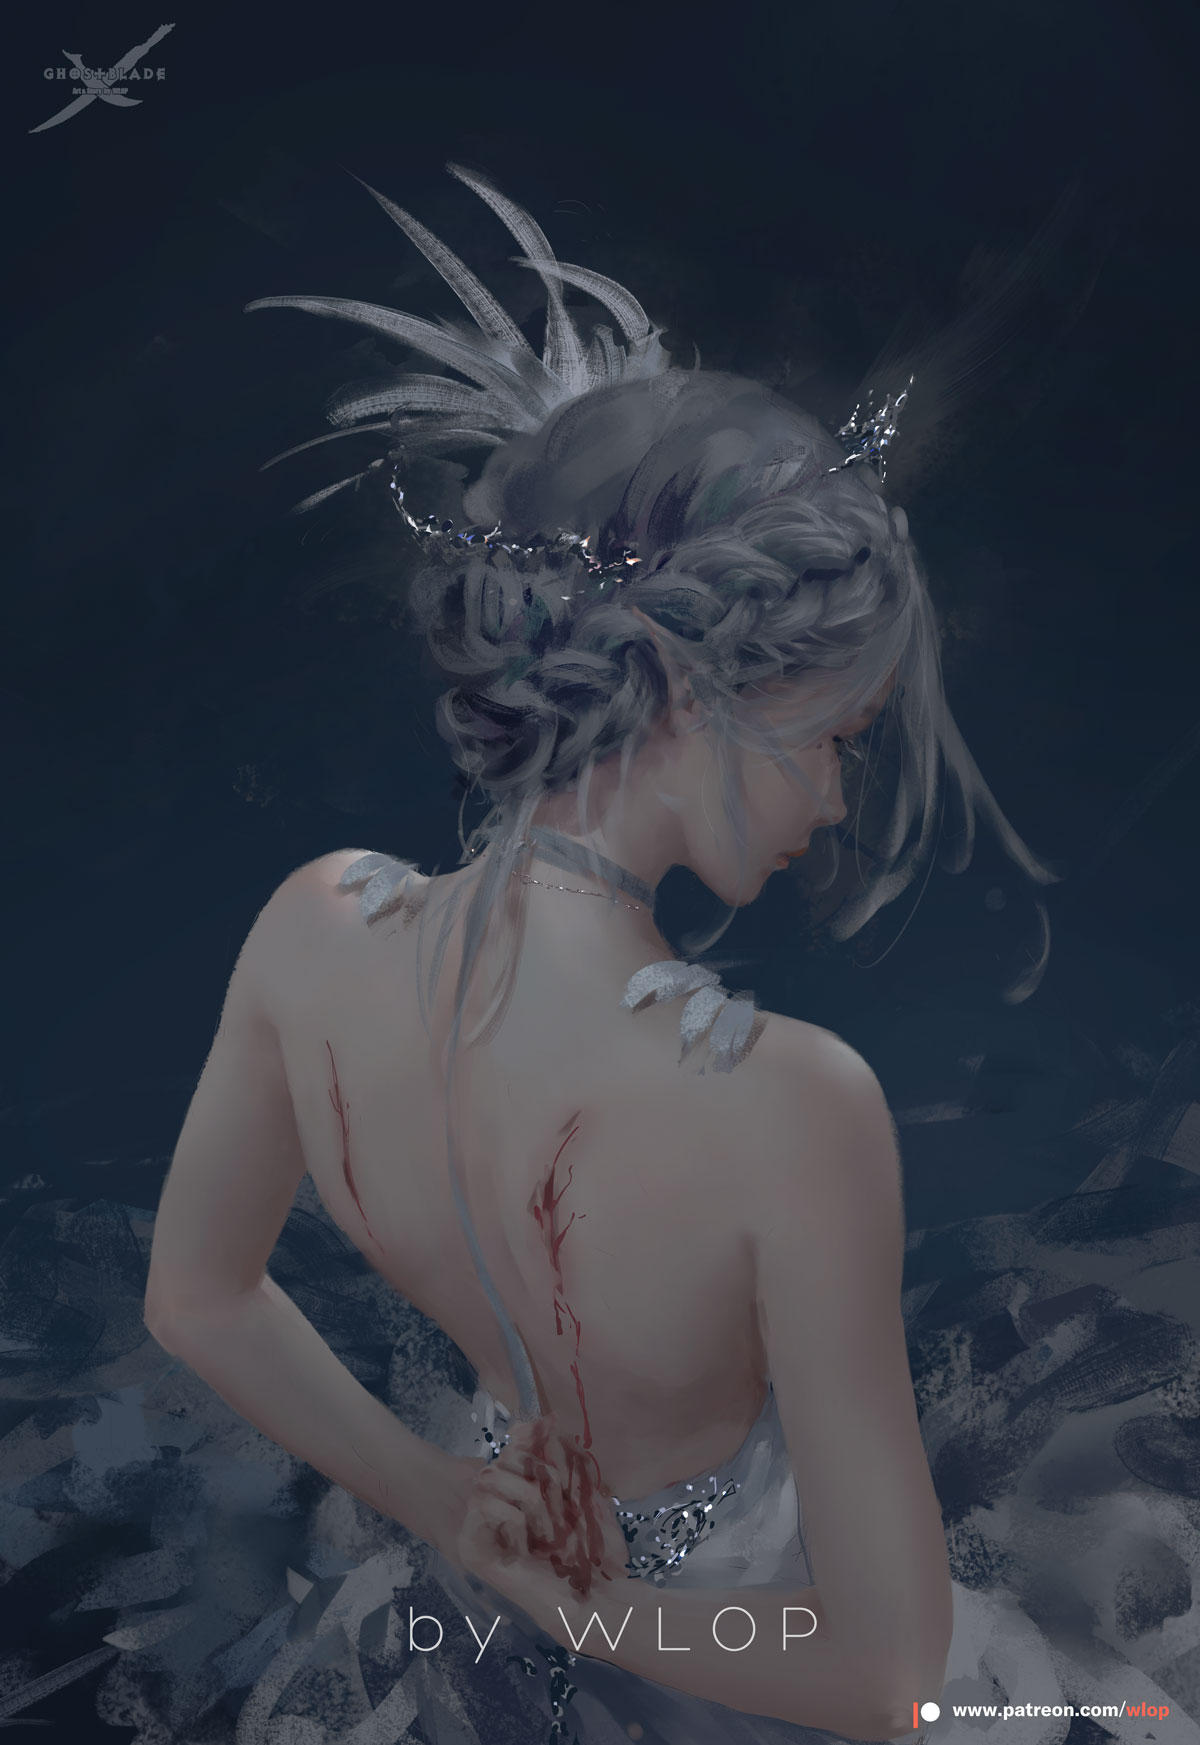 1girl artist_name backless_dress backless_outfit bare_arms bare_shoulders bleeding blood braid closed_mouth commentary crown dragon_wings dress english_commentary feathers from_behind ghostblade grey_hair hair_ornament highres injury patreon_username solo standing wings wlop